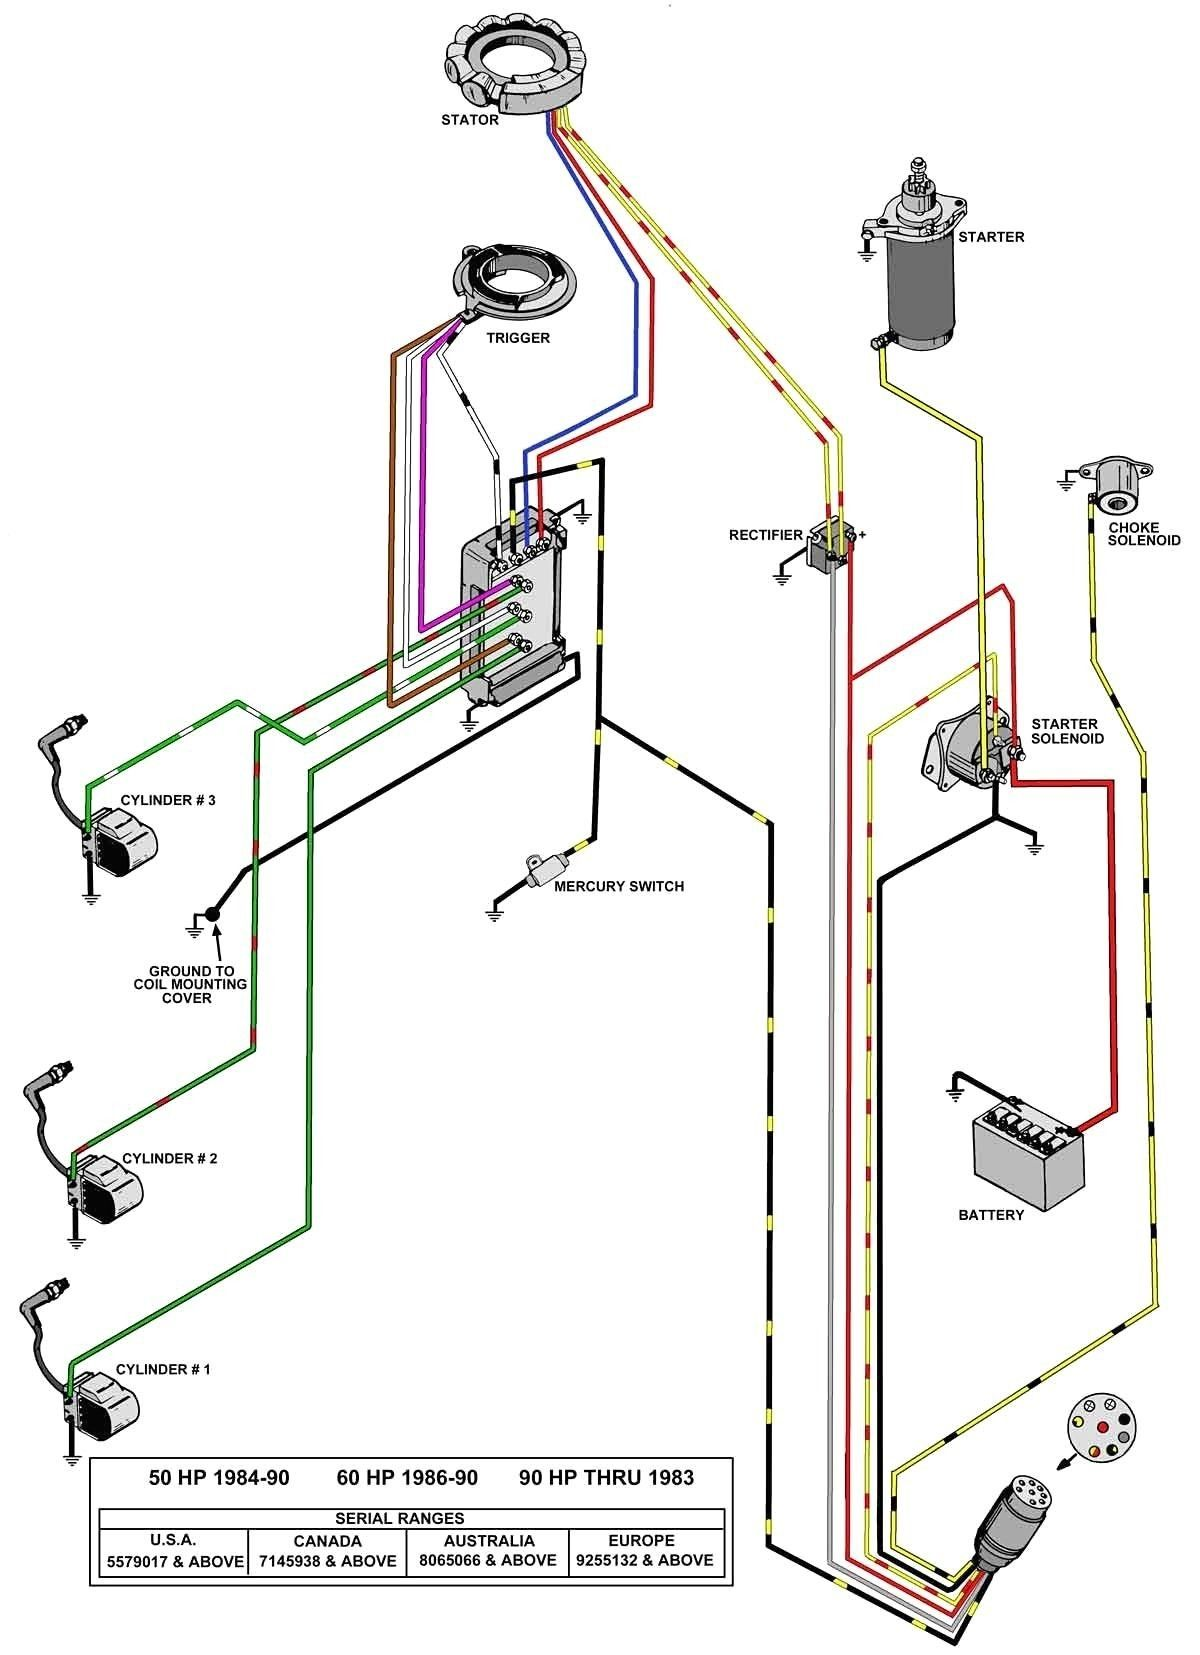 Key Switch Wire Diagram For A Mercury Outboaed With Chock Mercury Outboard Outboard Boat Wiring